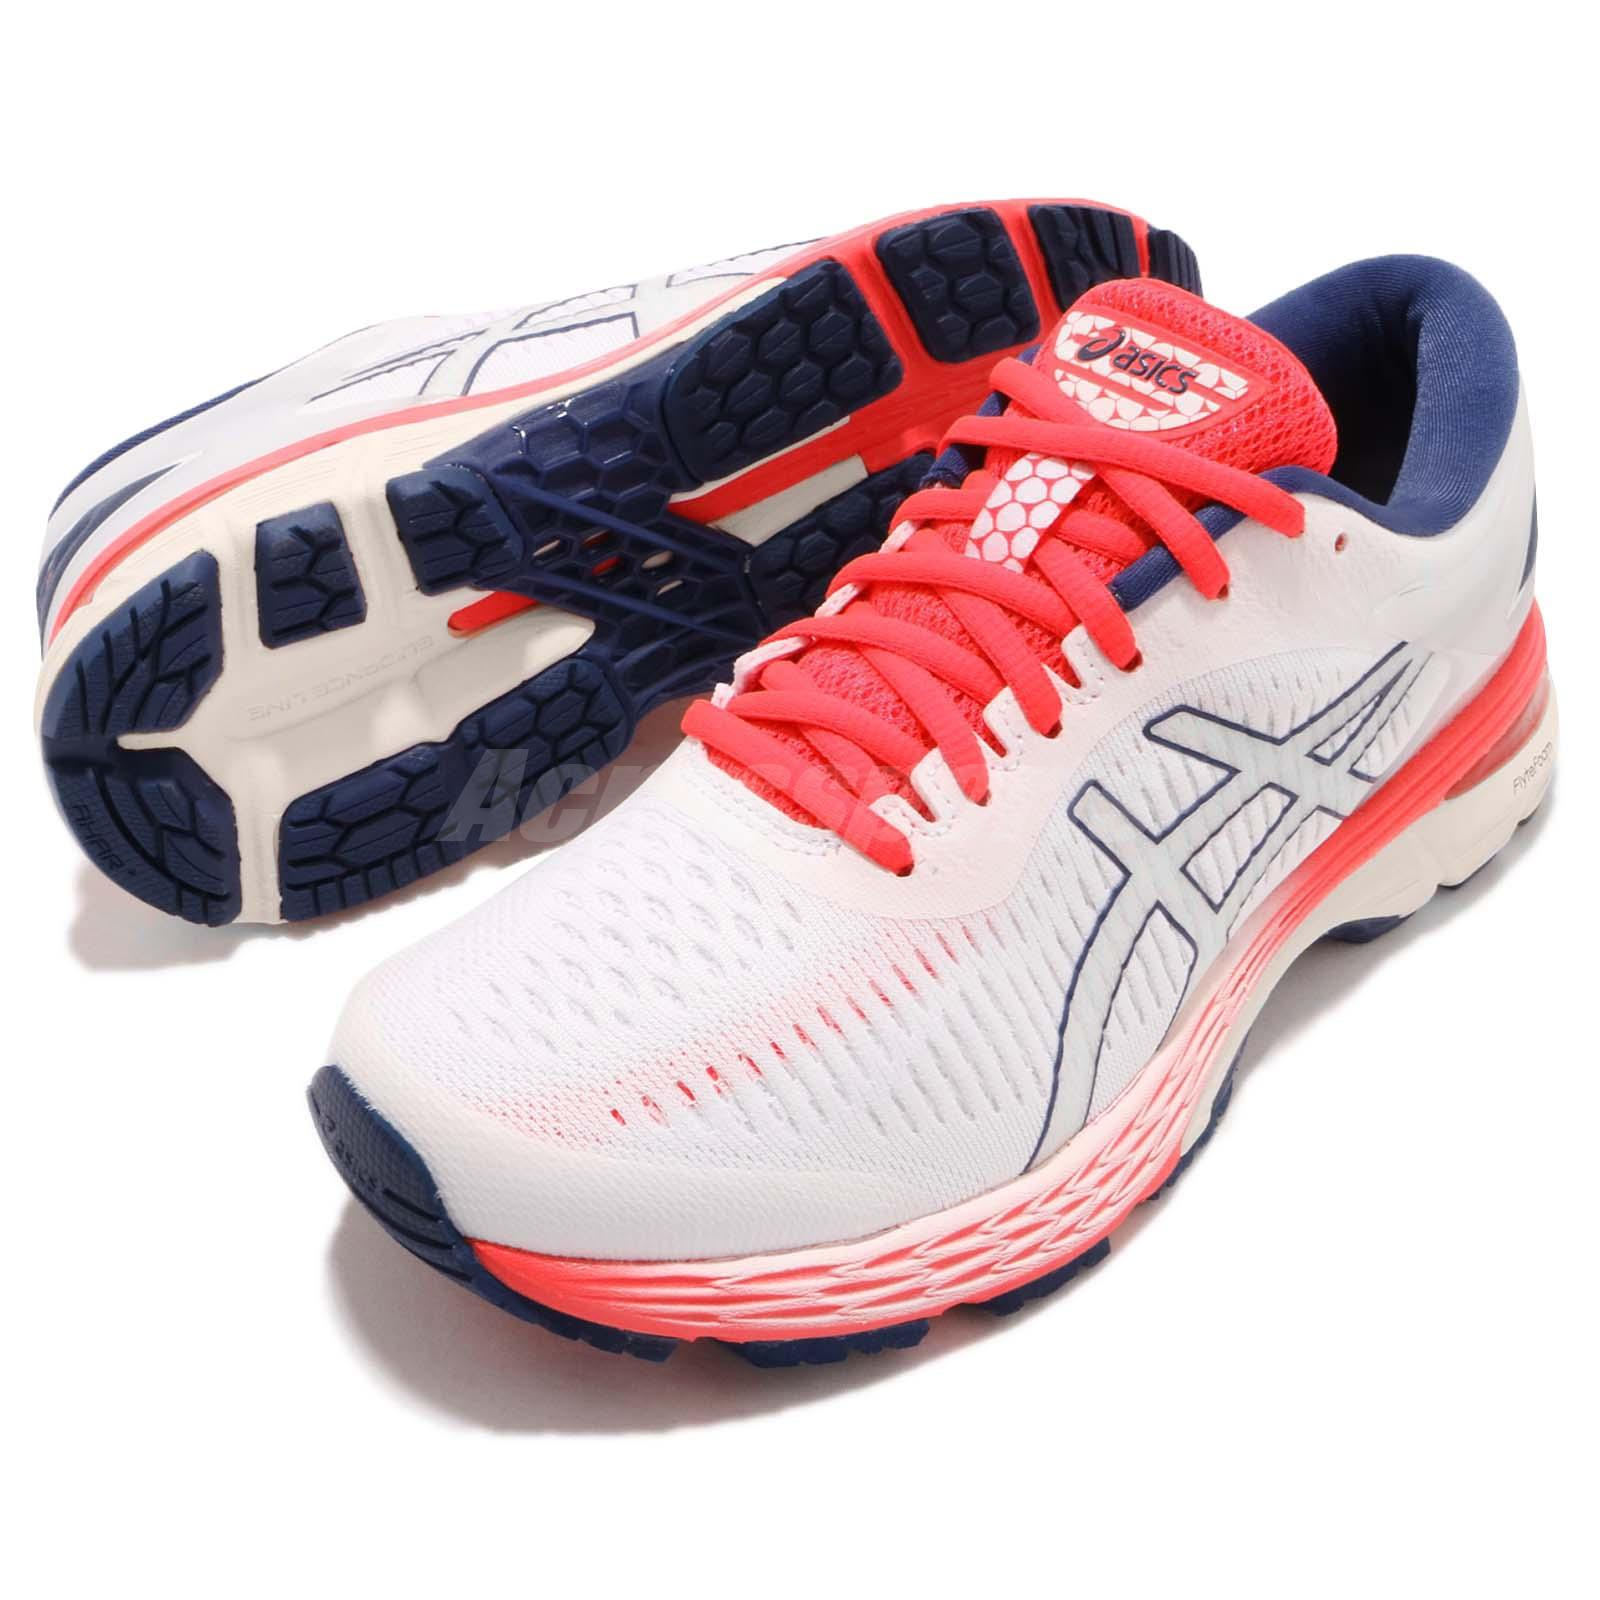 451939220fc Details about Asics Gel-Kayano 25 D Wide White Pink Blue Womens Running  Shoes 1012A03-2100